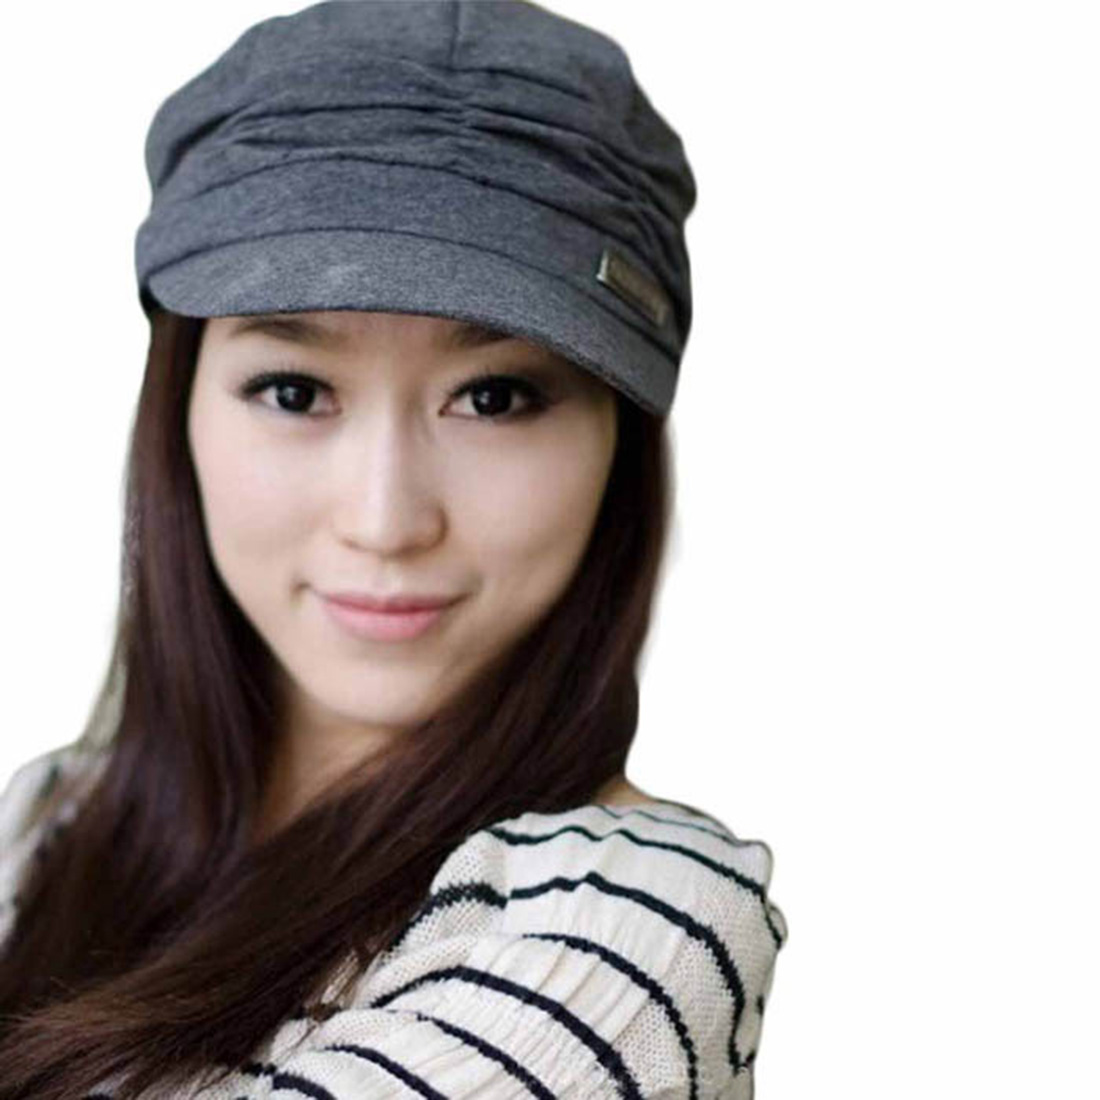 Outdoor Ski Knit Hats Women Hot Autumn And Winter Cold Warm Sweet Hat Retro Wool Wild Ladies And Girl Pleated Beret cap in Women 39 s Berets from Apparel Accessories